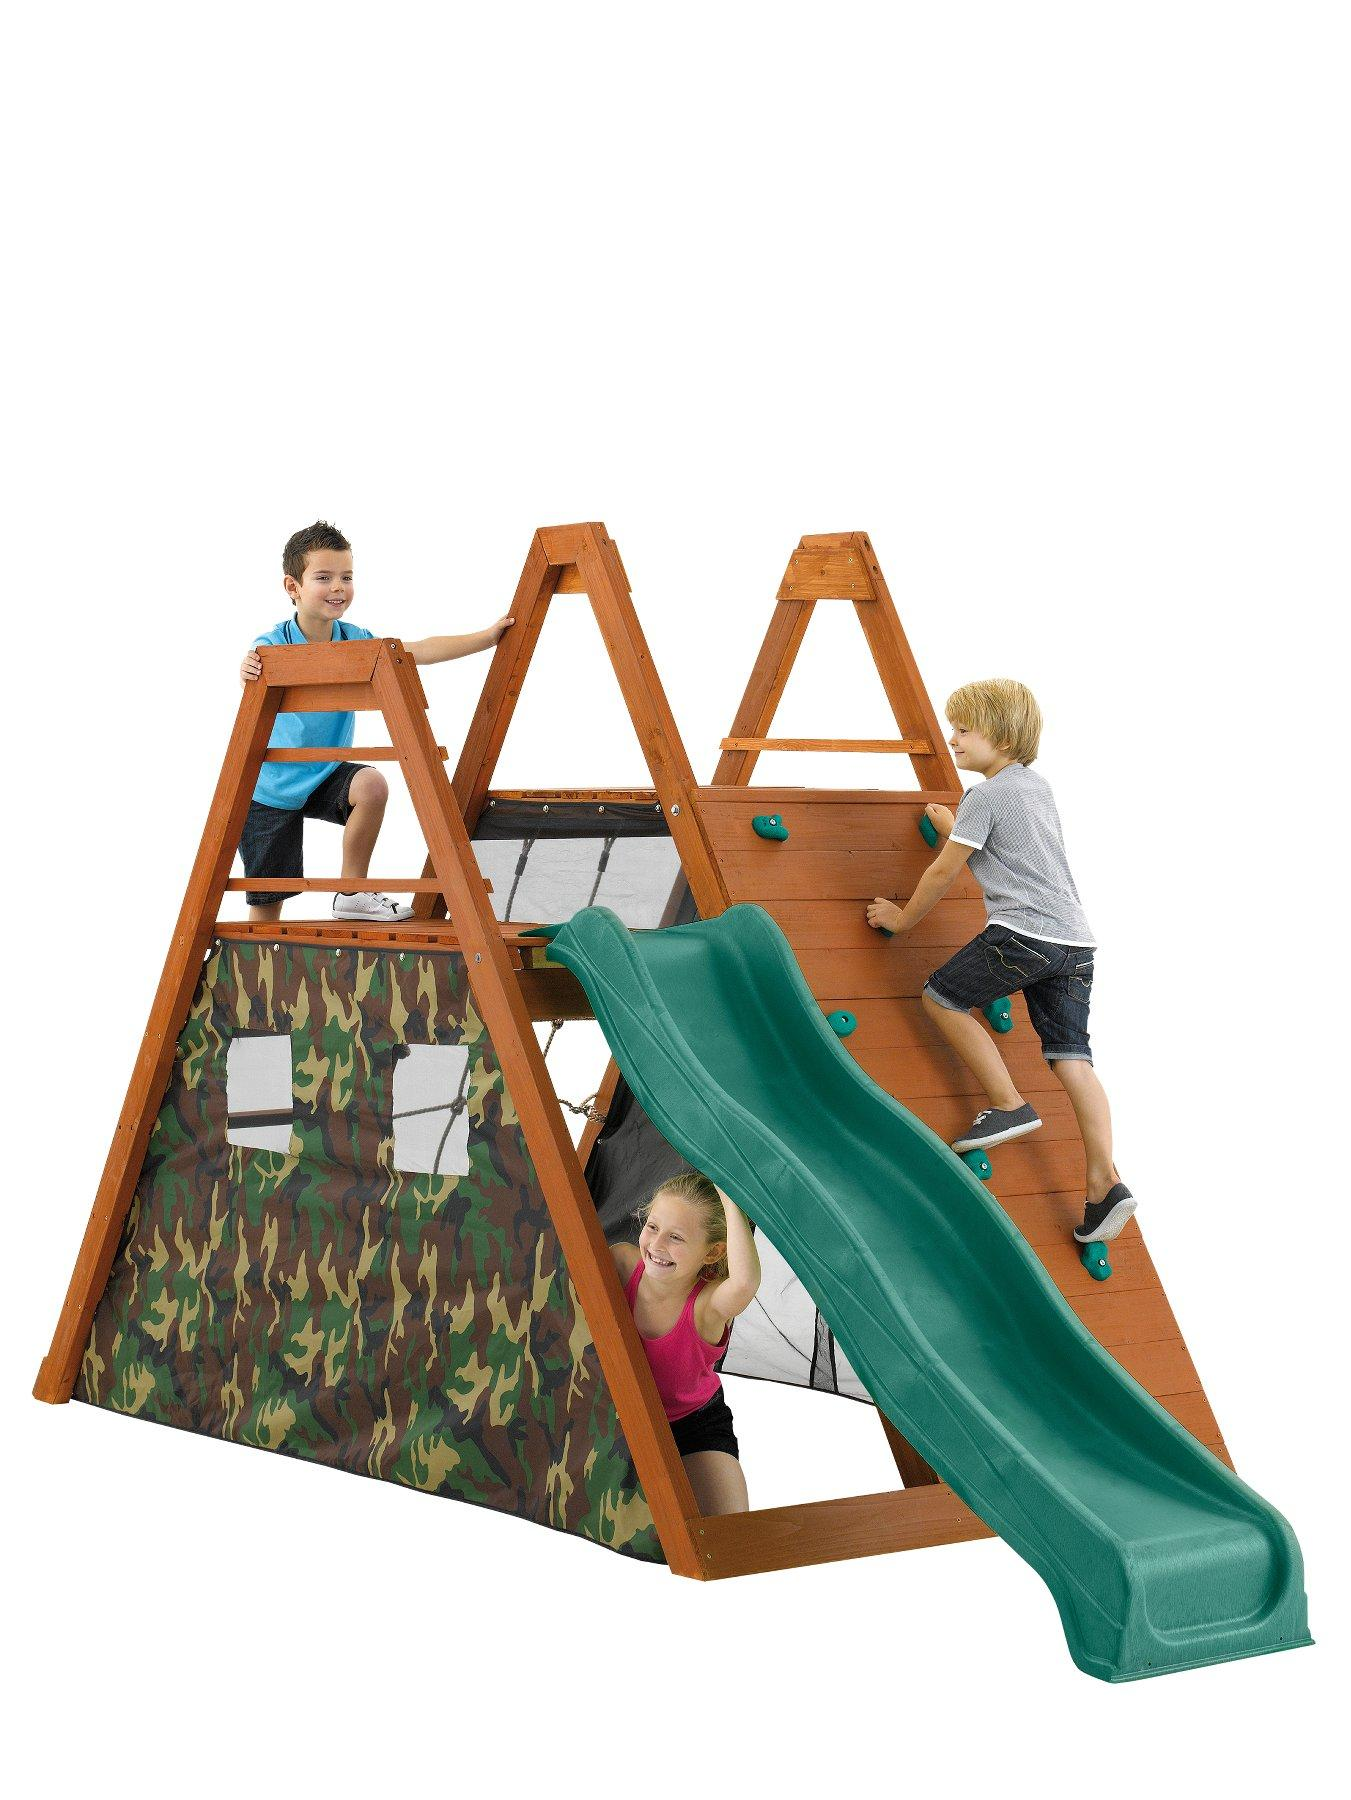 Climbing Pyramid Wooden Play Centre